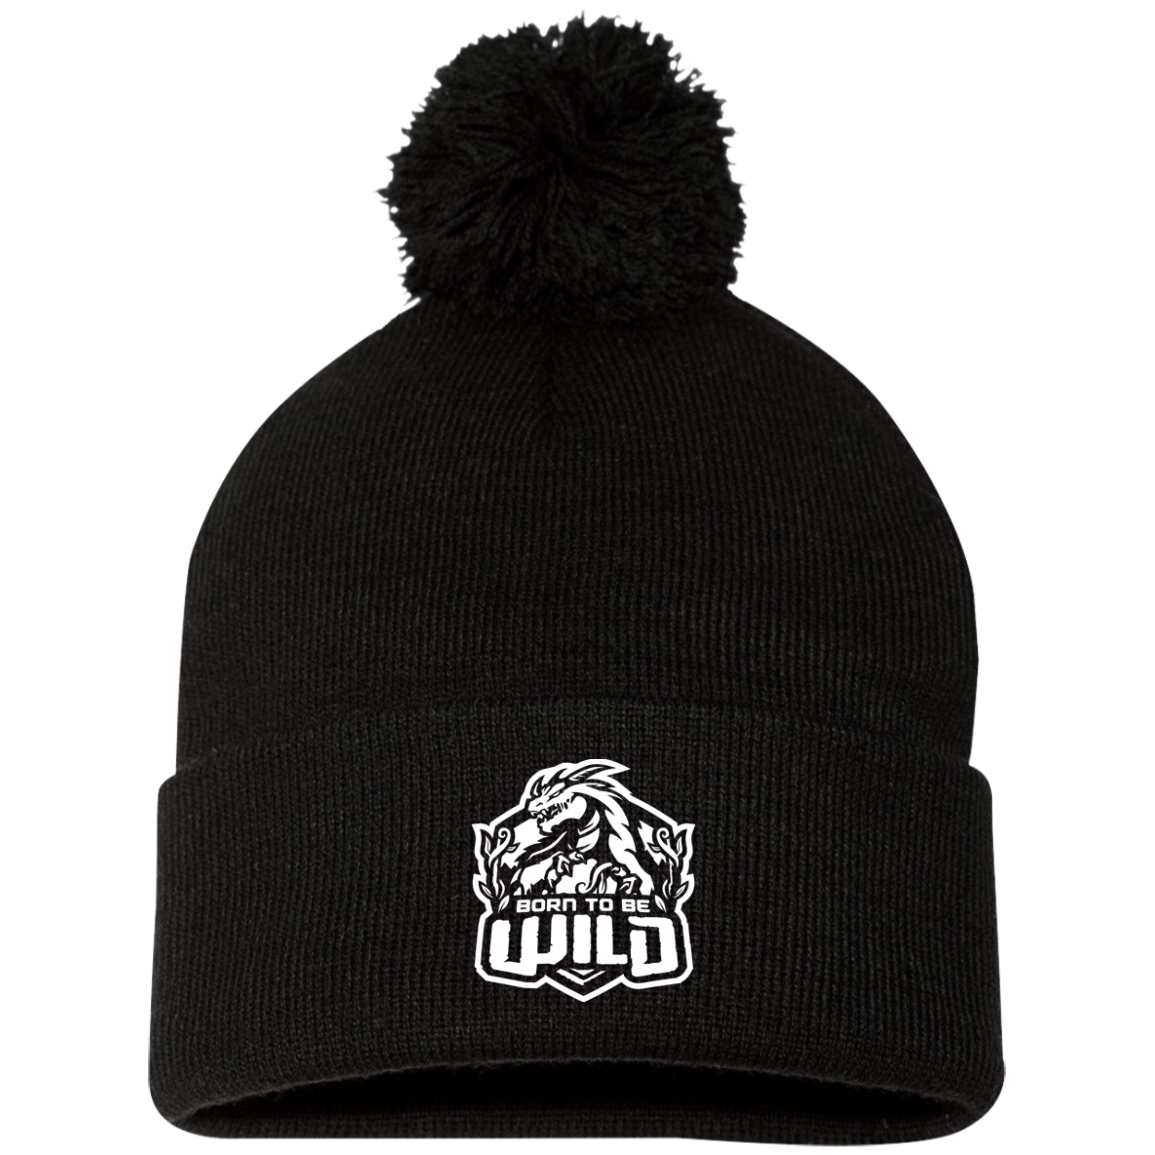 Born To Be Wild White Logo Pom Pom Knit Cap - Spangle